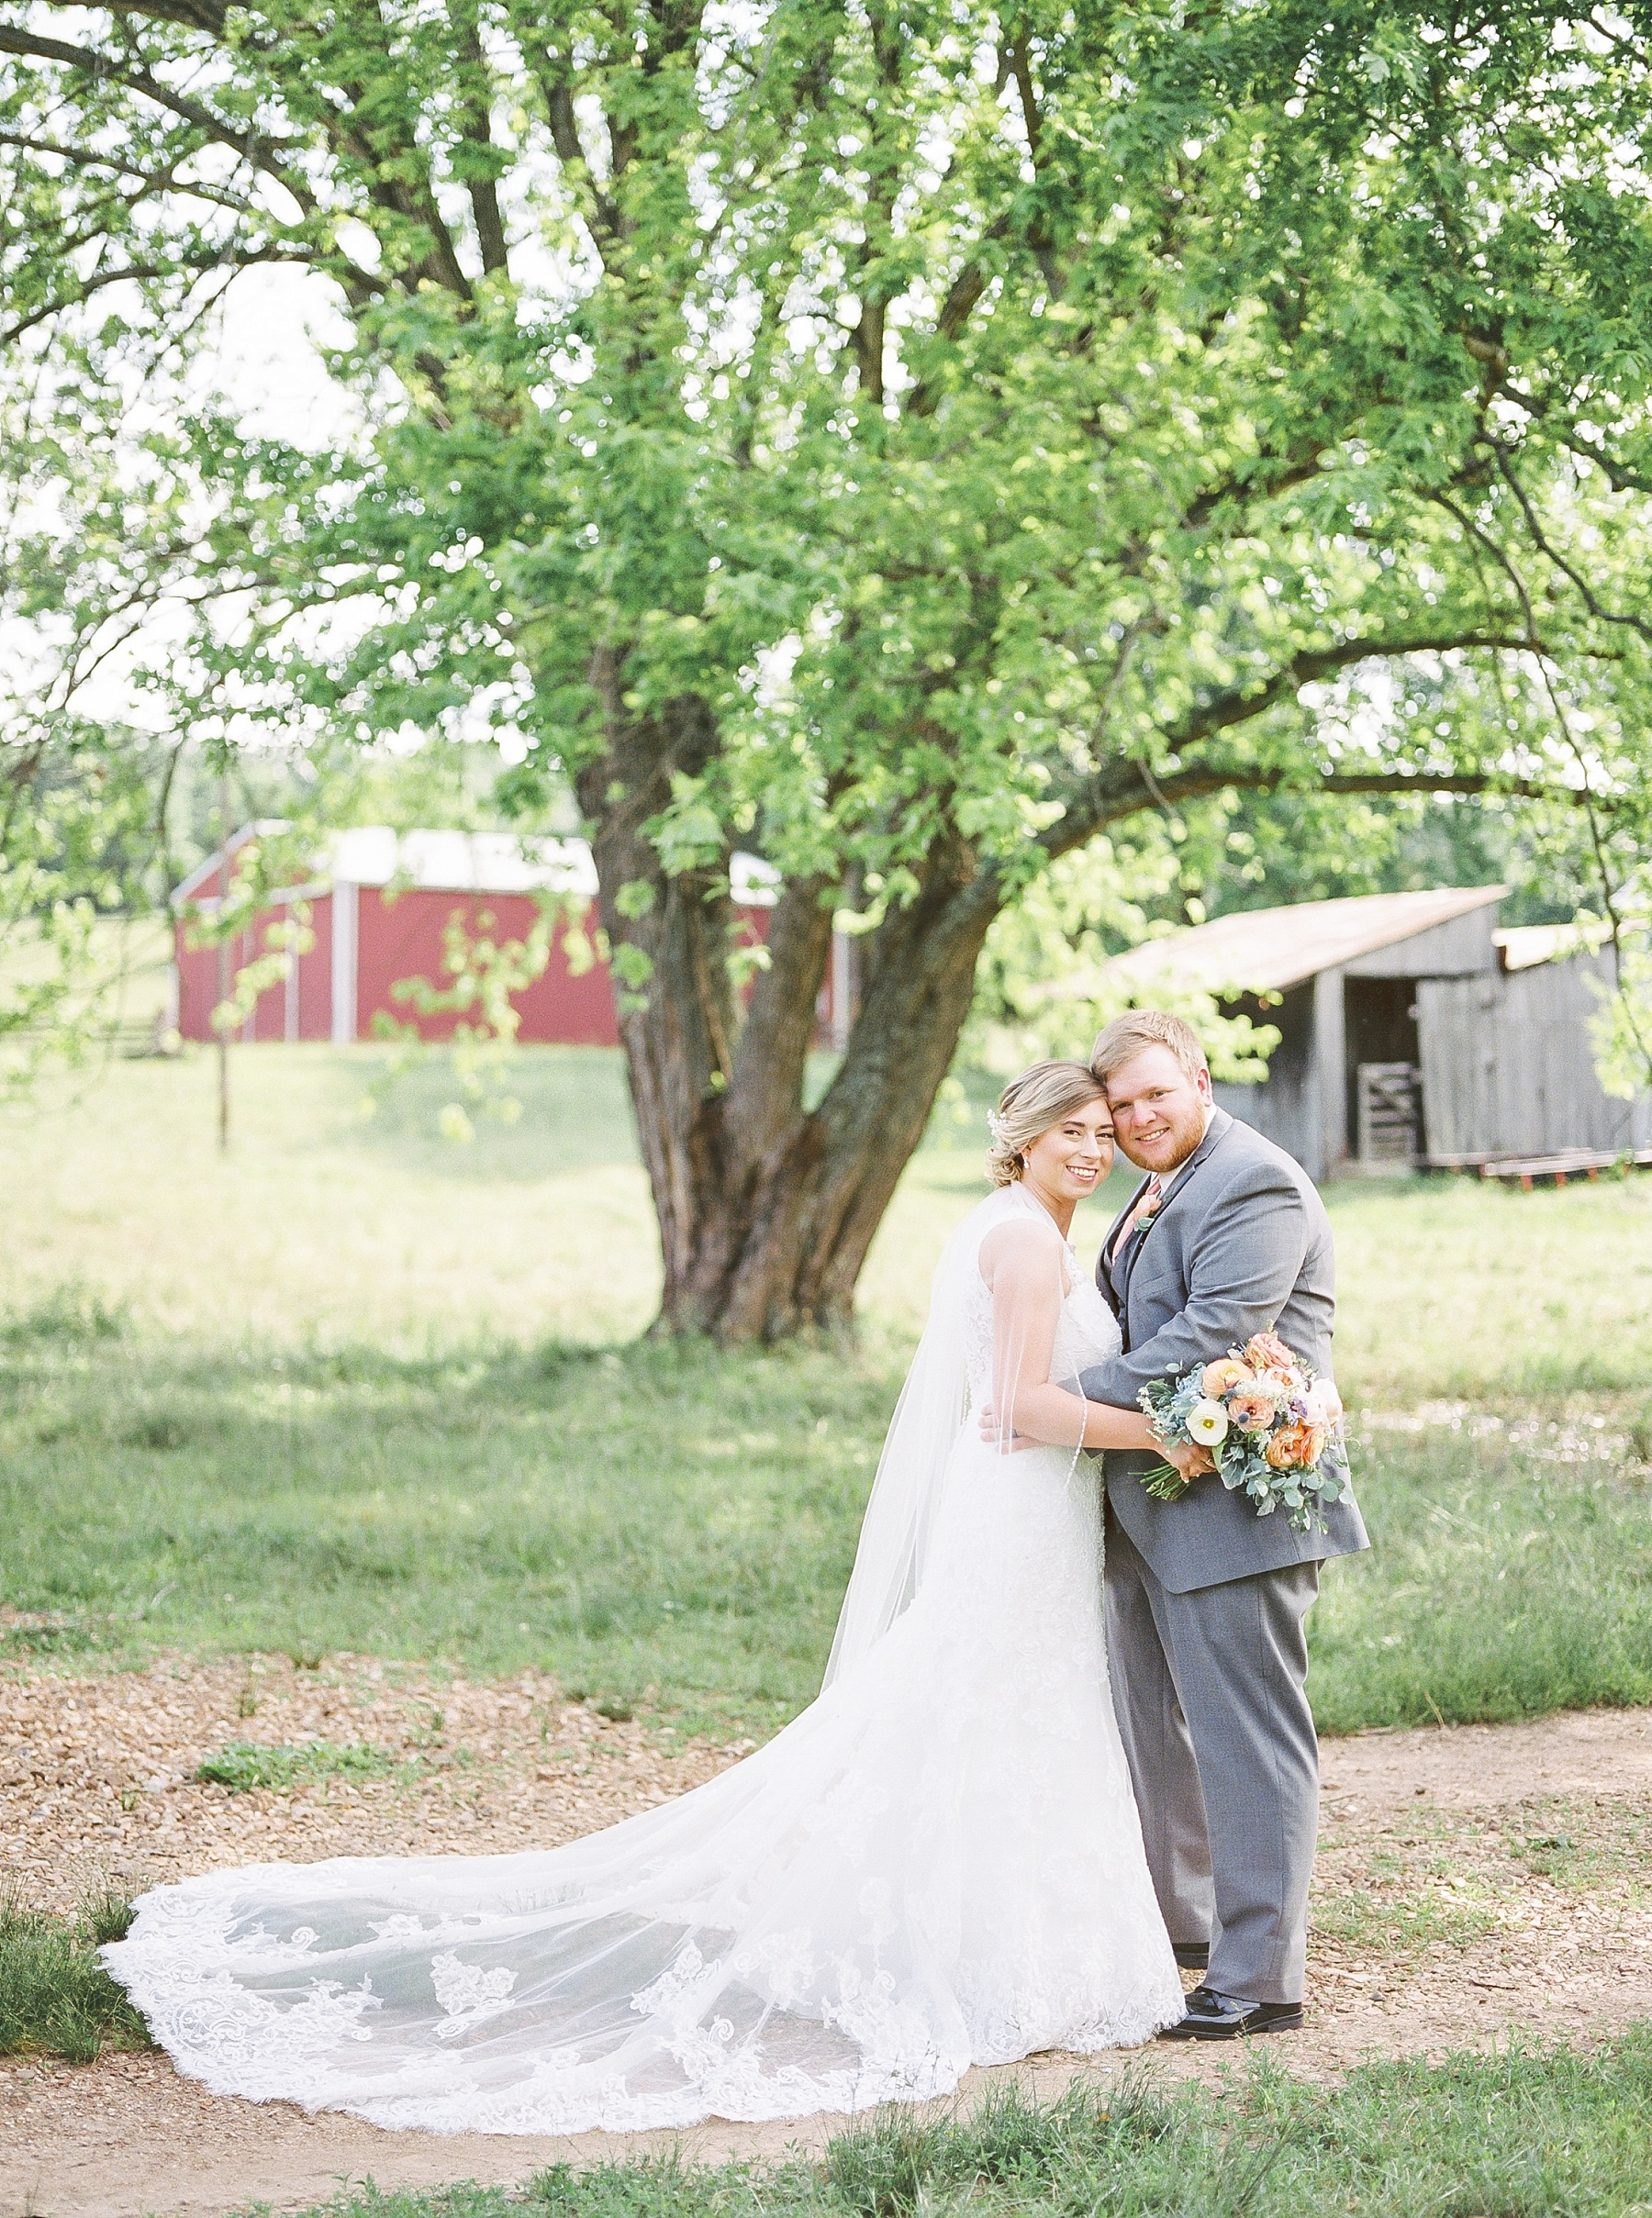 Peach and Dusty Blue Spring Wedding in Rolling Hills of Mid Missouri by Kelsi Kliethermes Photography Best Missouri and Maui Wedding Photographer_0043.jpg